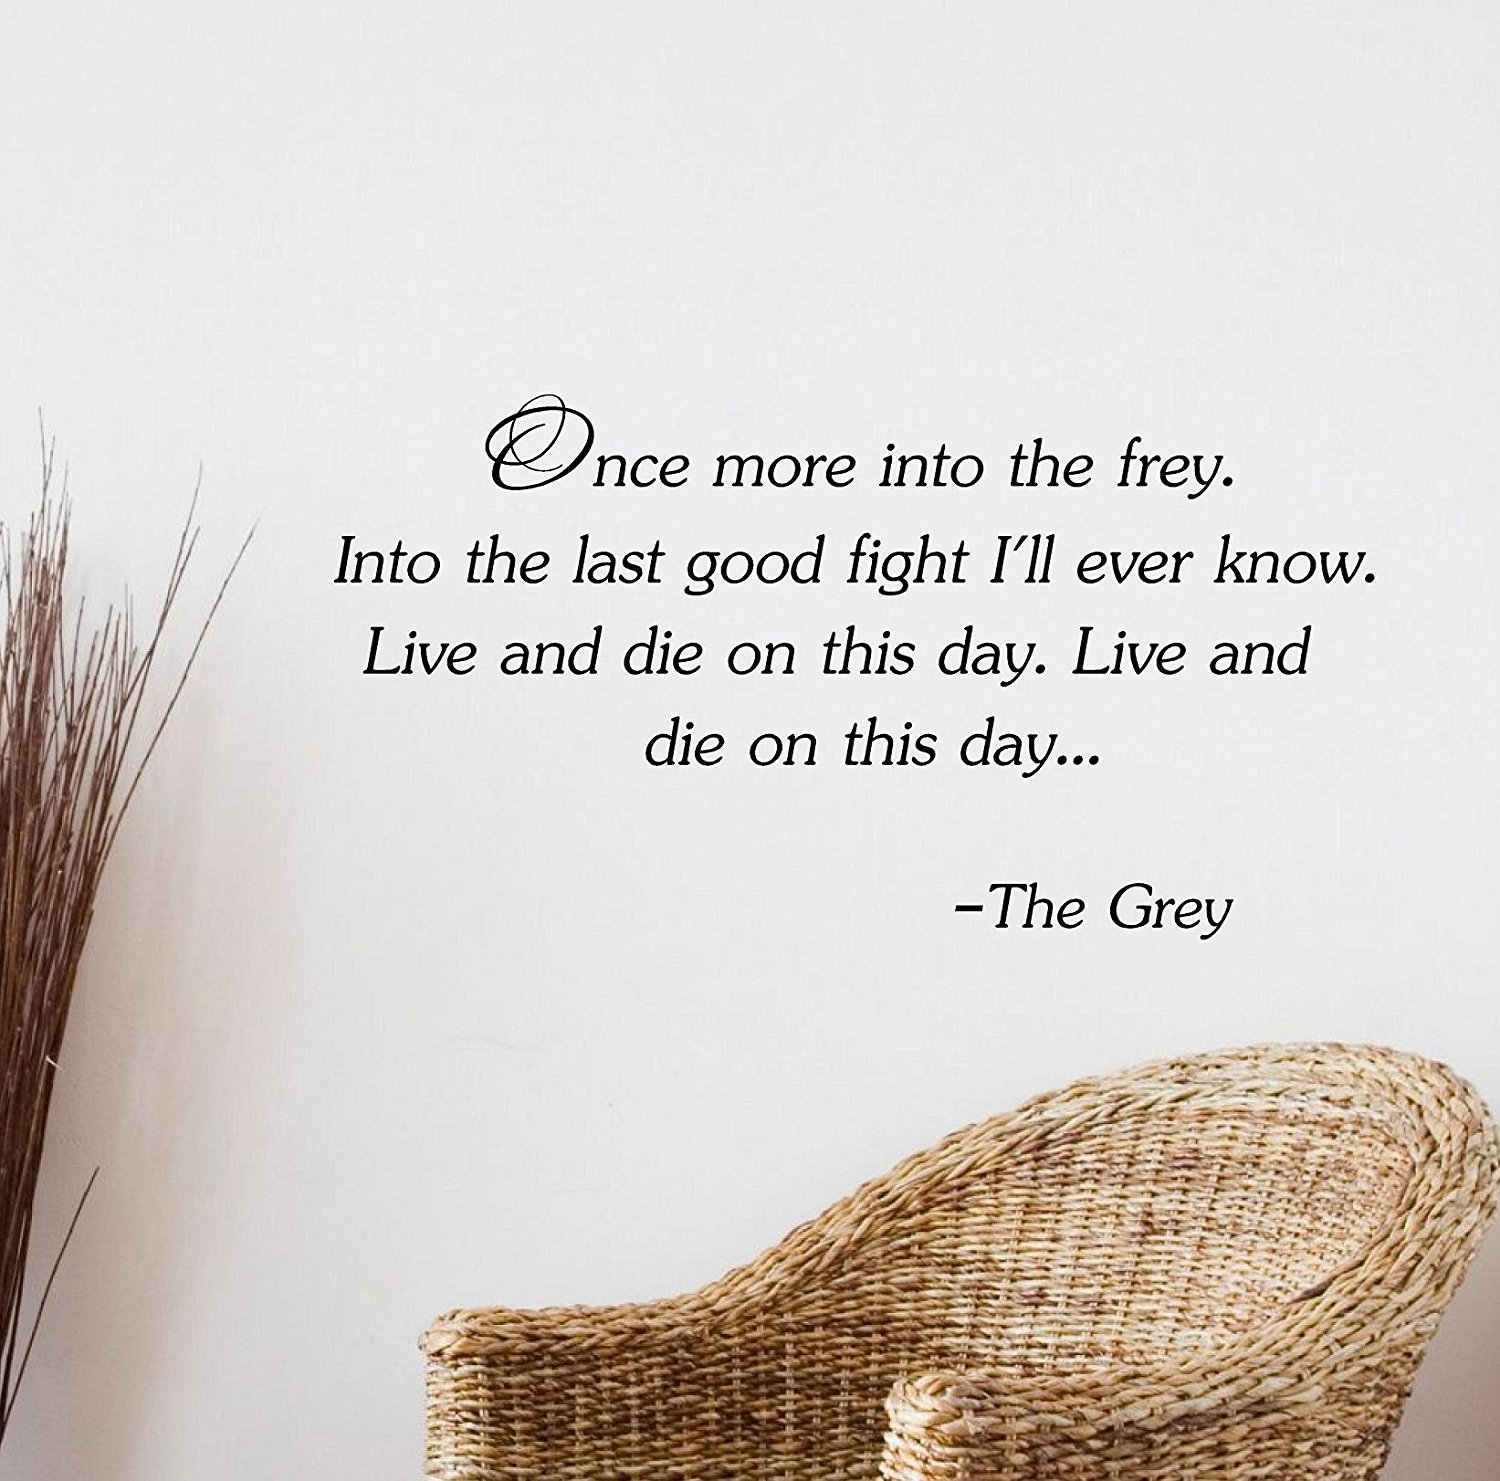 Once more into the frey. Into the last good fight I'll ever know. Live and die on this day. Live and die on this day... -The Grey Vinyl Wall Art Inspirational Quotes and Saying Home Decor Decal Sticker Steamss